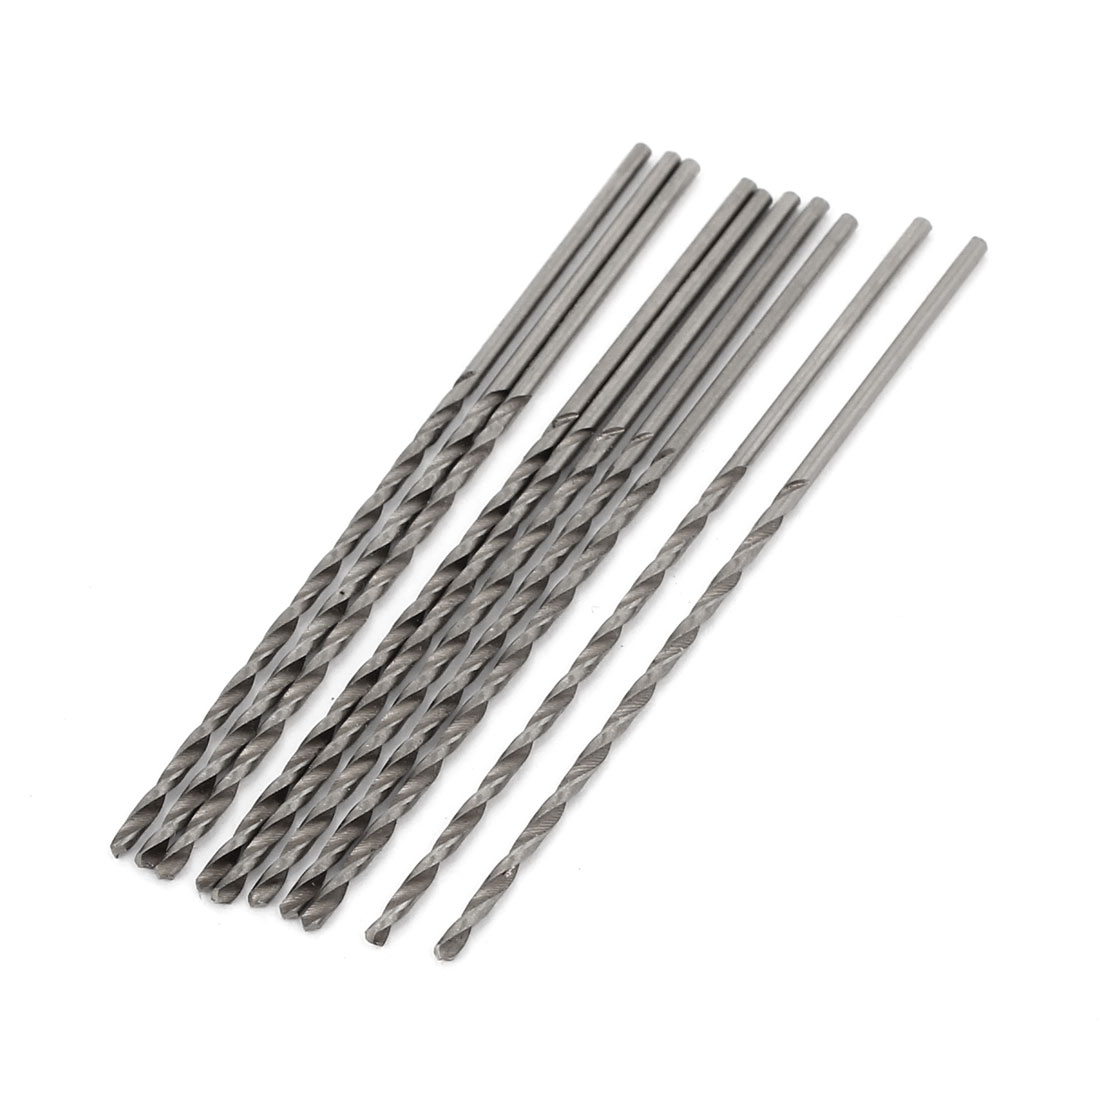 10 Pieces 1.3mm x 40mm Straight Shank HSS Twist Drilling Bits Silver Tone